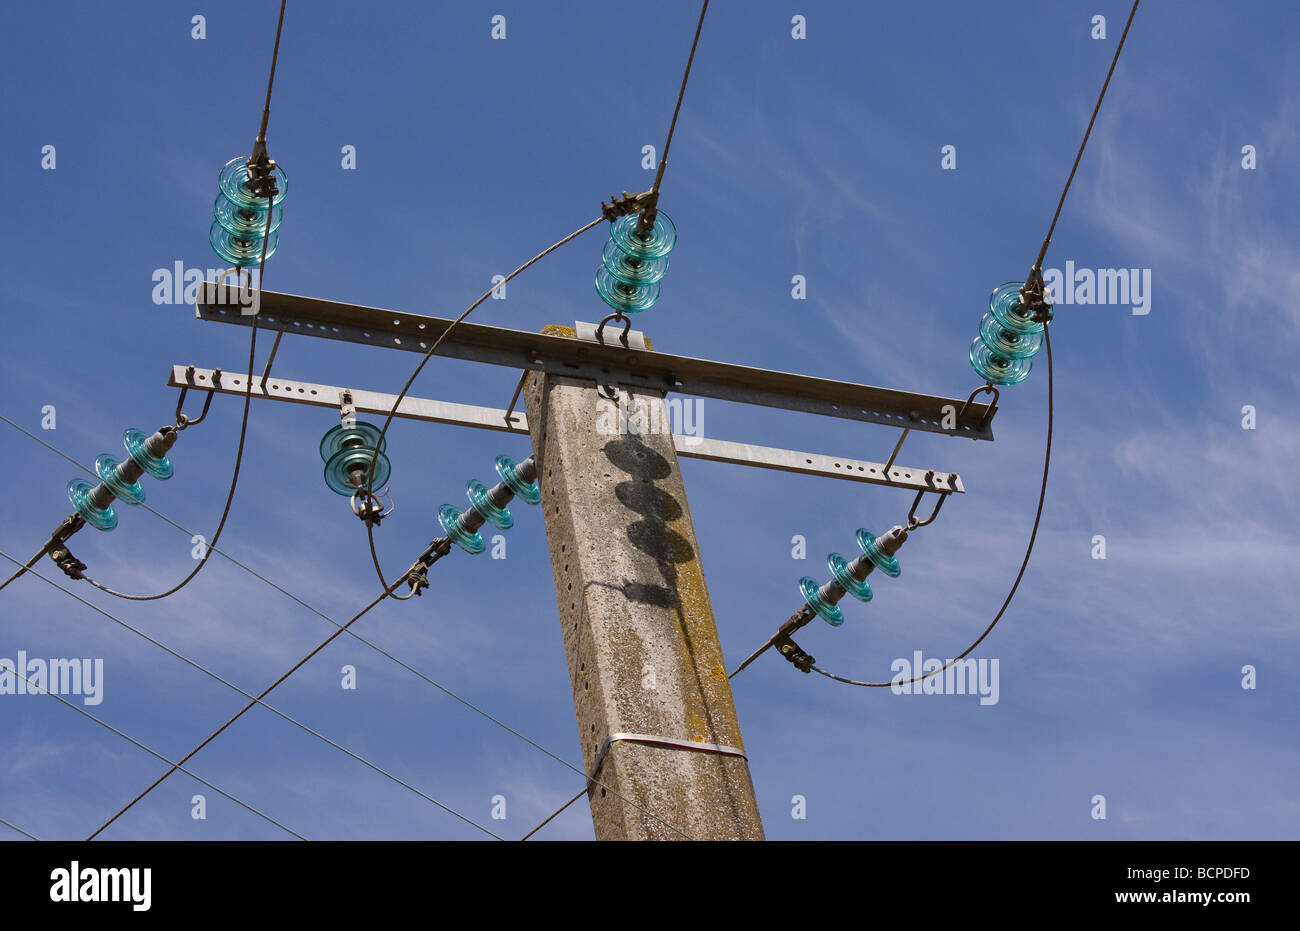 Power line and glass insulators - Stock Image